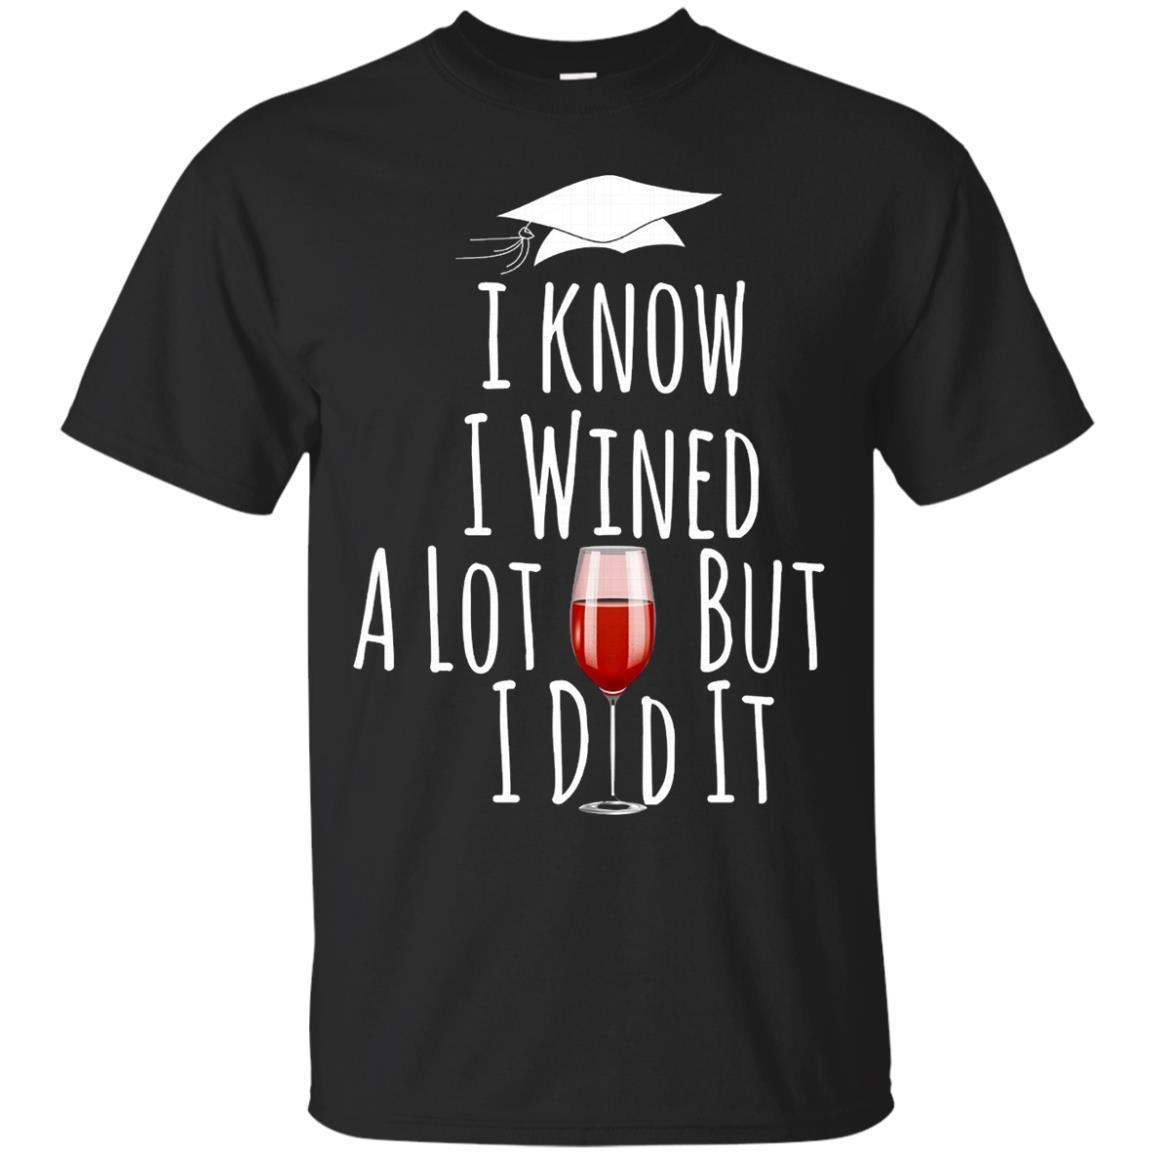 I Wined A Lot But I Did It – Funny Graduation T-Shirt